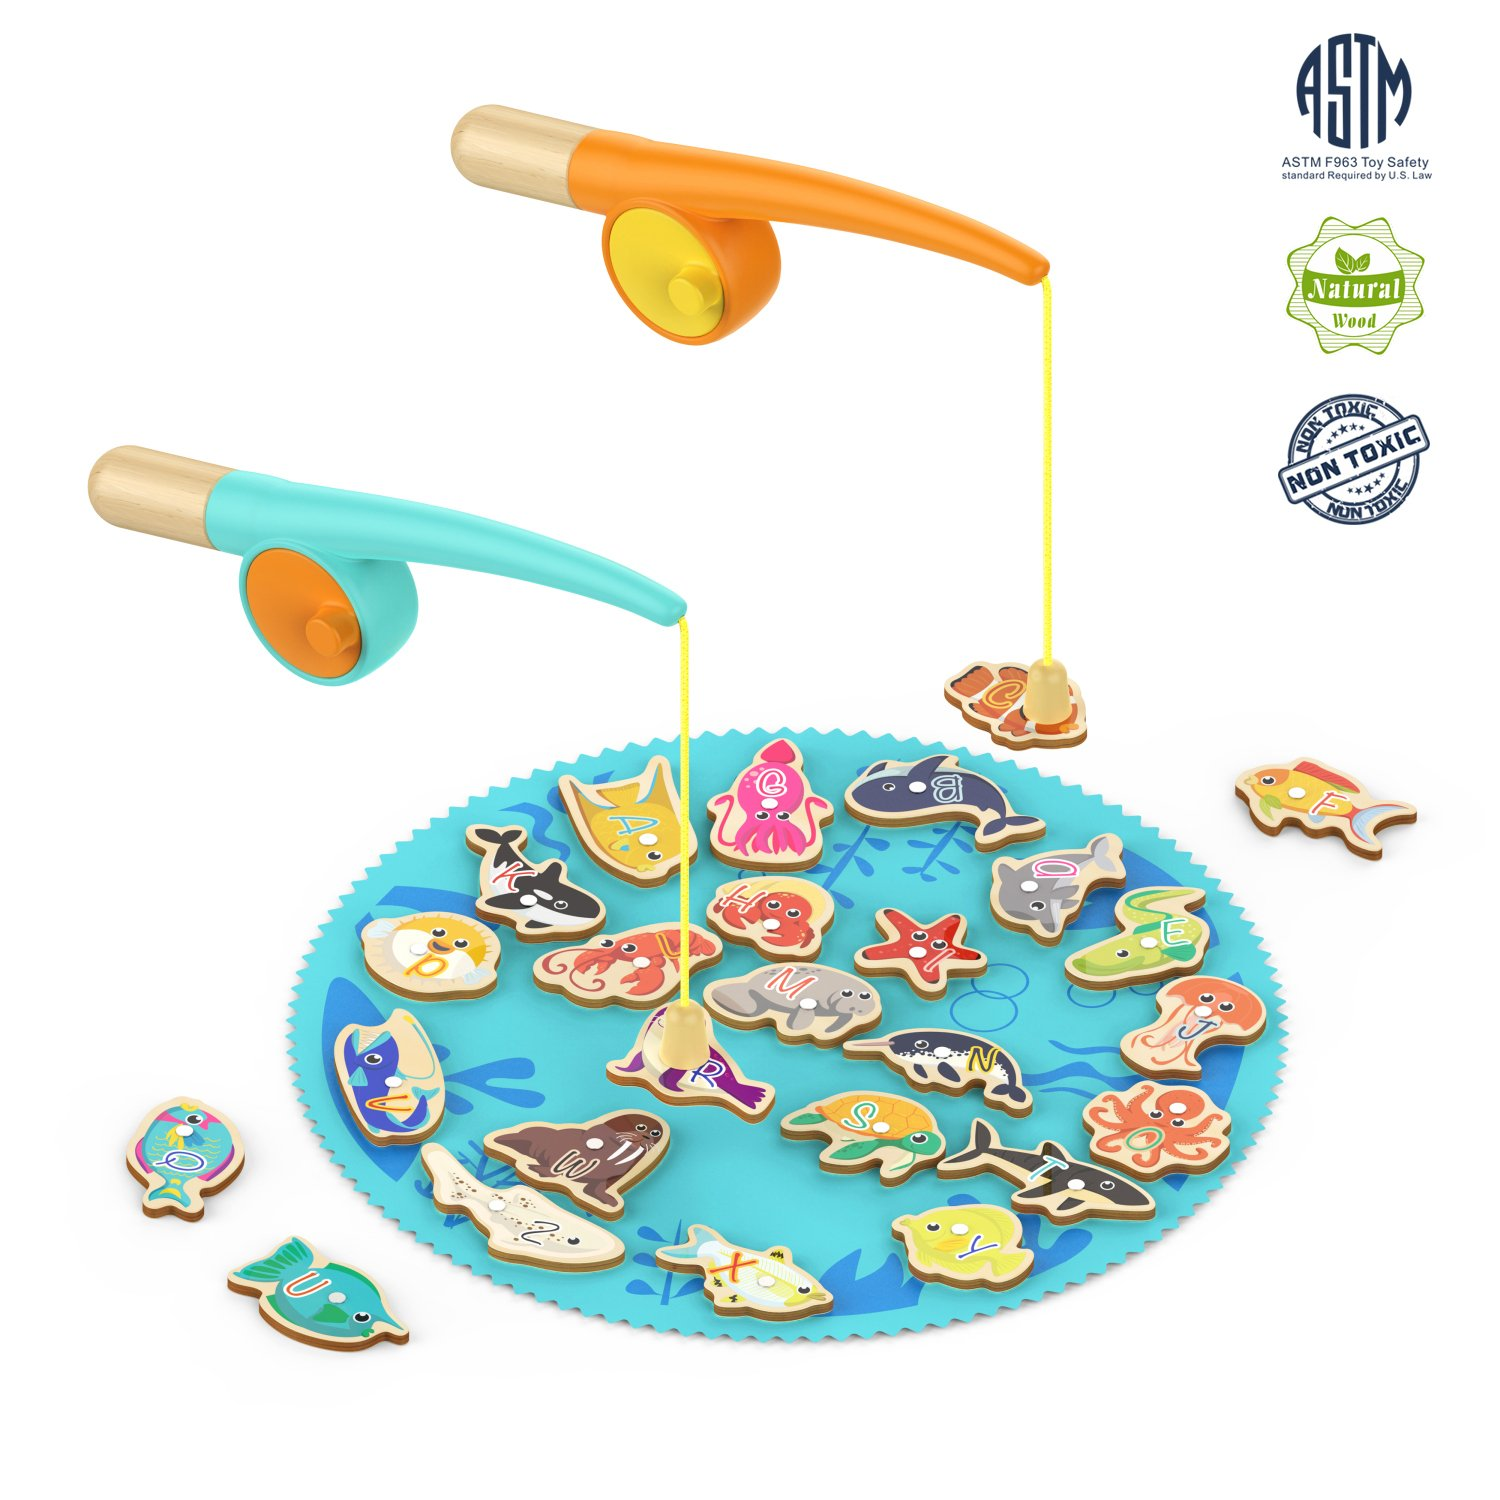 TOP BRIGHT Magnetic Wooden Fishing Game for Toddler Fish Toy for 2 3 4 Year Old Boy Gifts Catch and Count with 26 Ocean Animals and 2 Rods